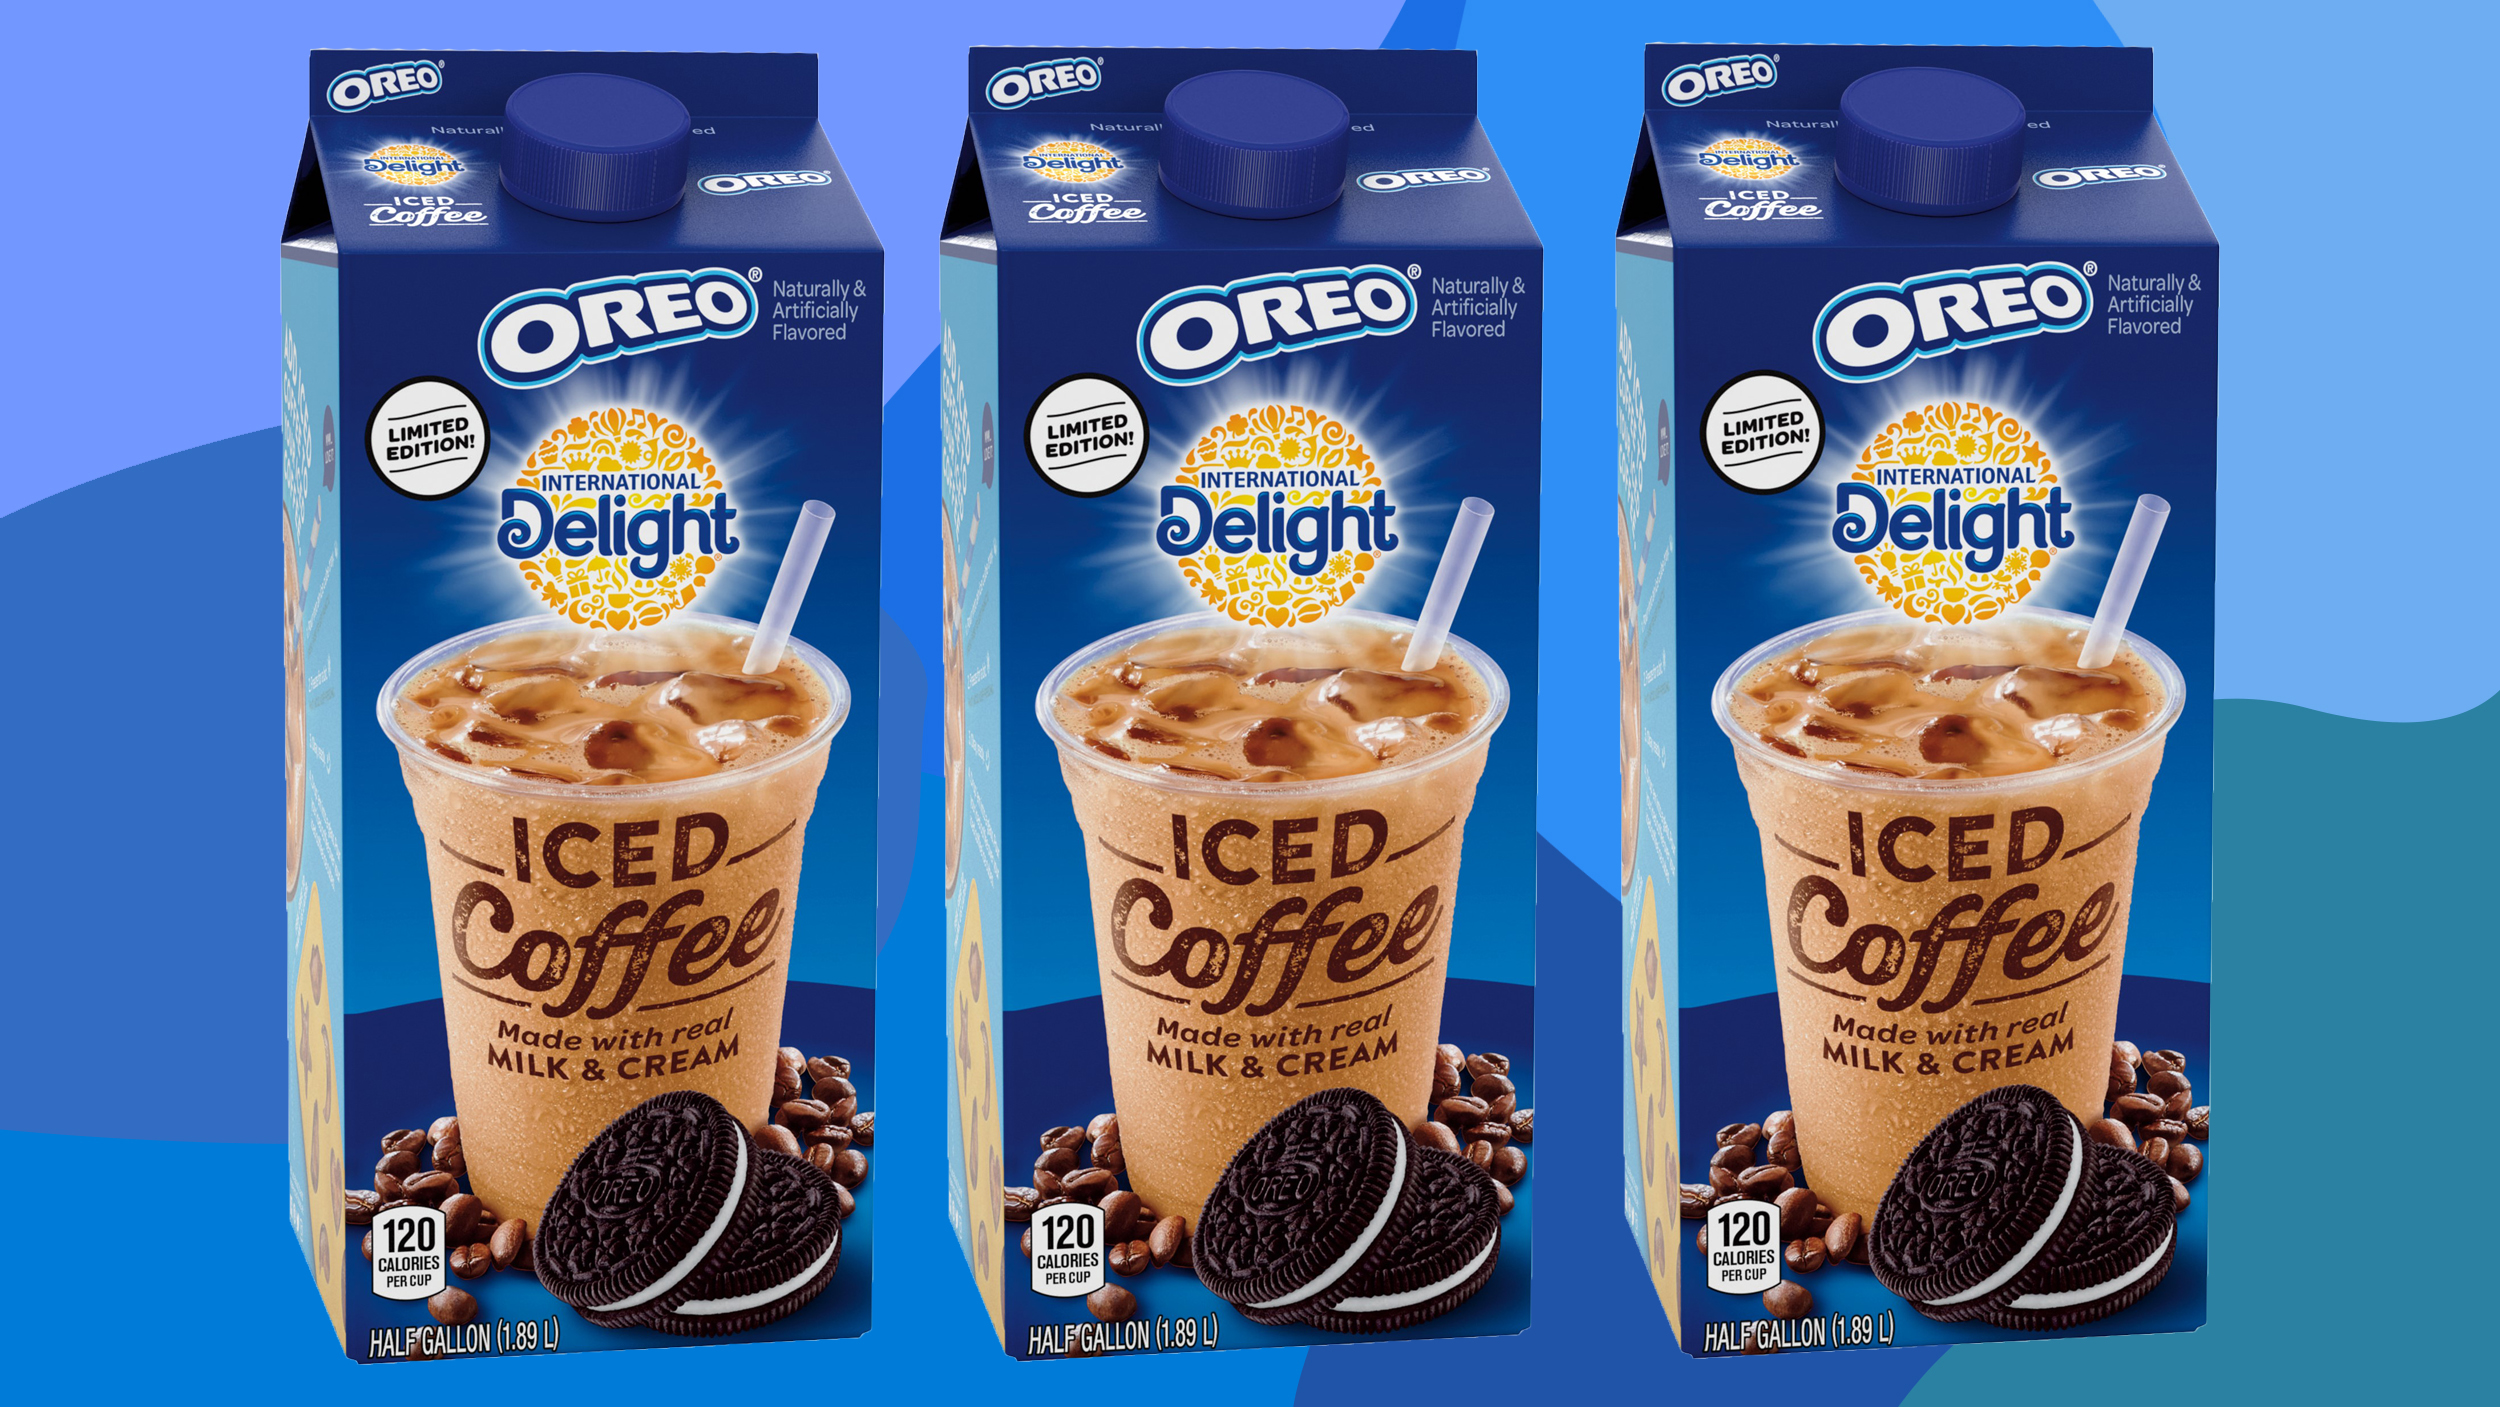 International Delight Oreo Iced Coffee Is Available At Walmart